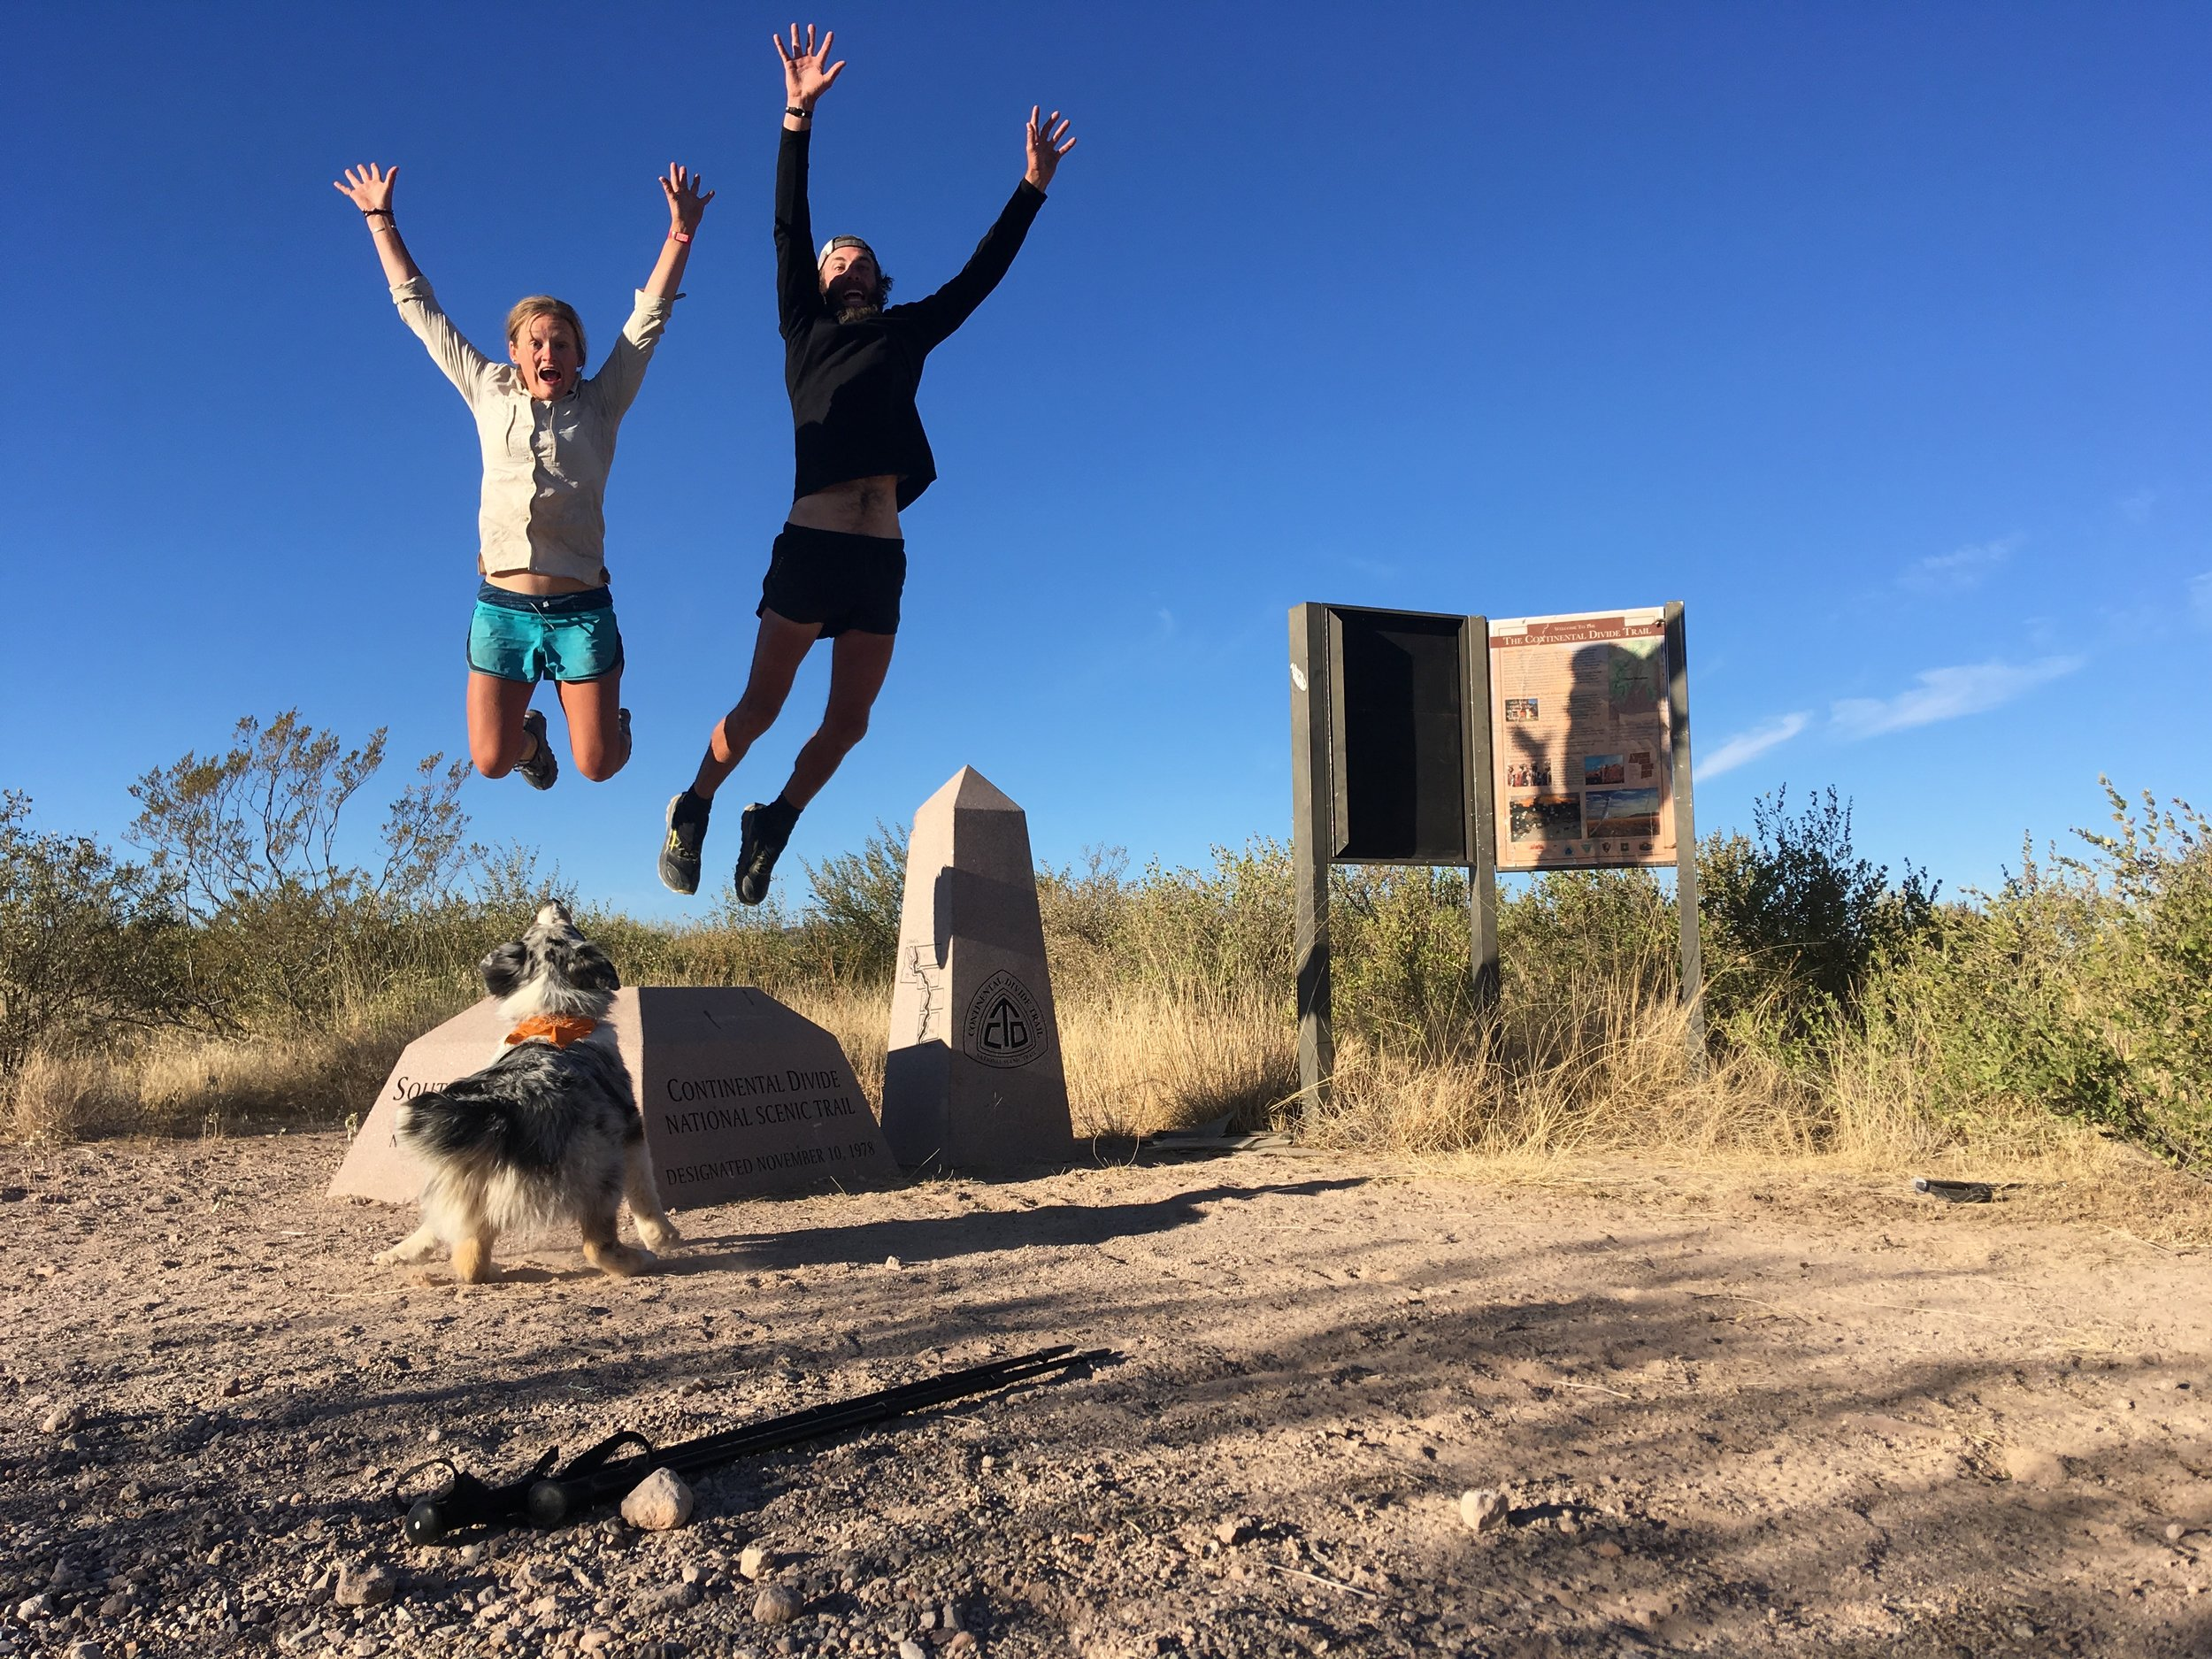 Southern Terminus - Crazy Cook Monument, NM